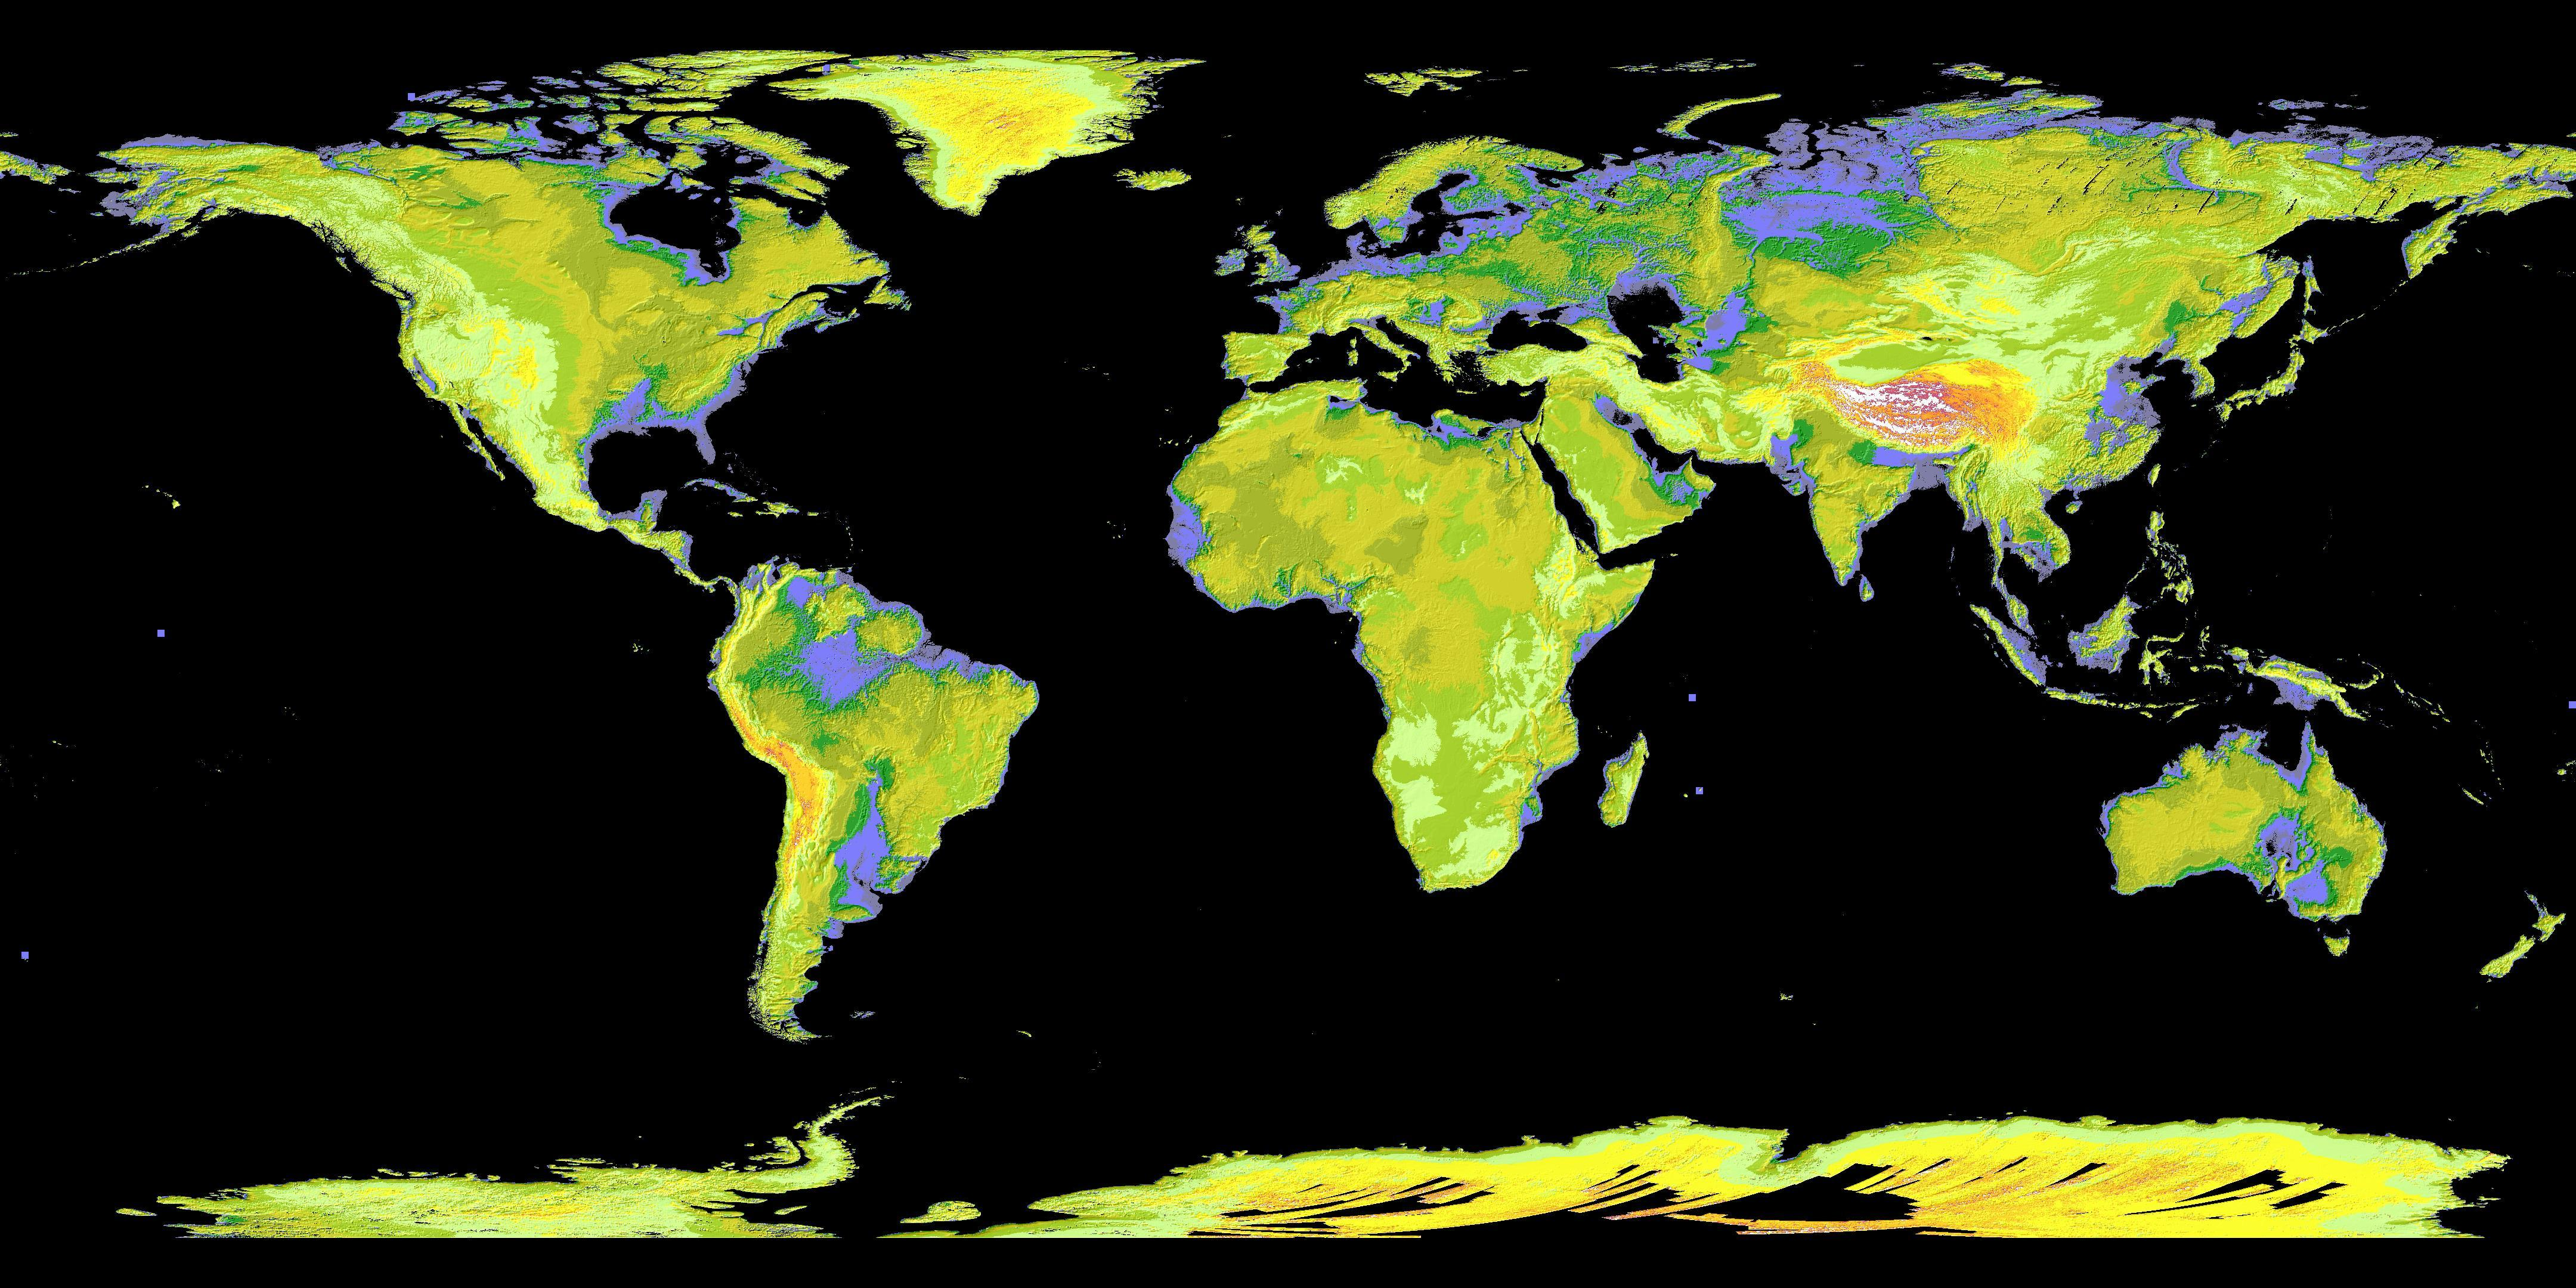 Global digital elevation model nasa global digital elevation model gumiabroncs Image collections